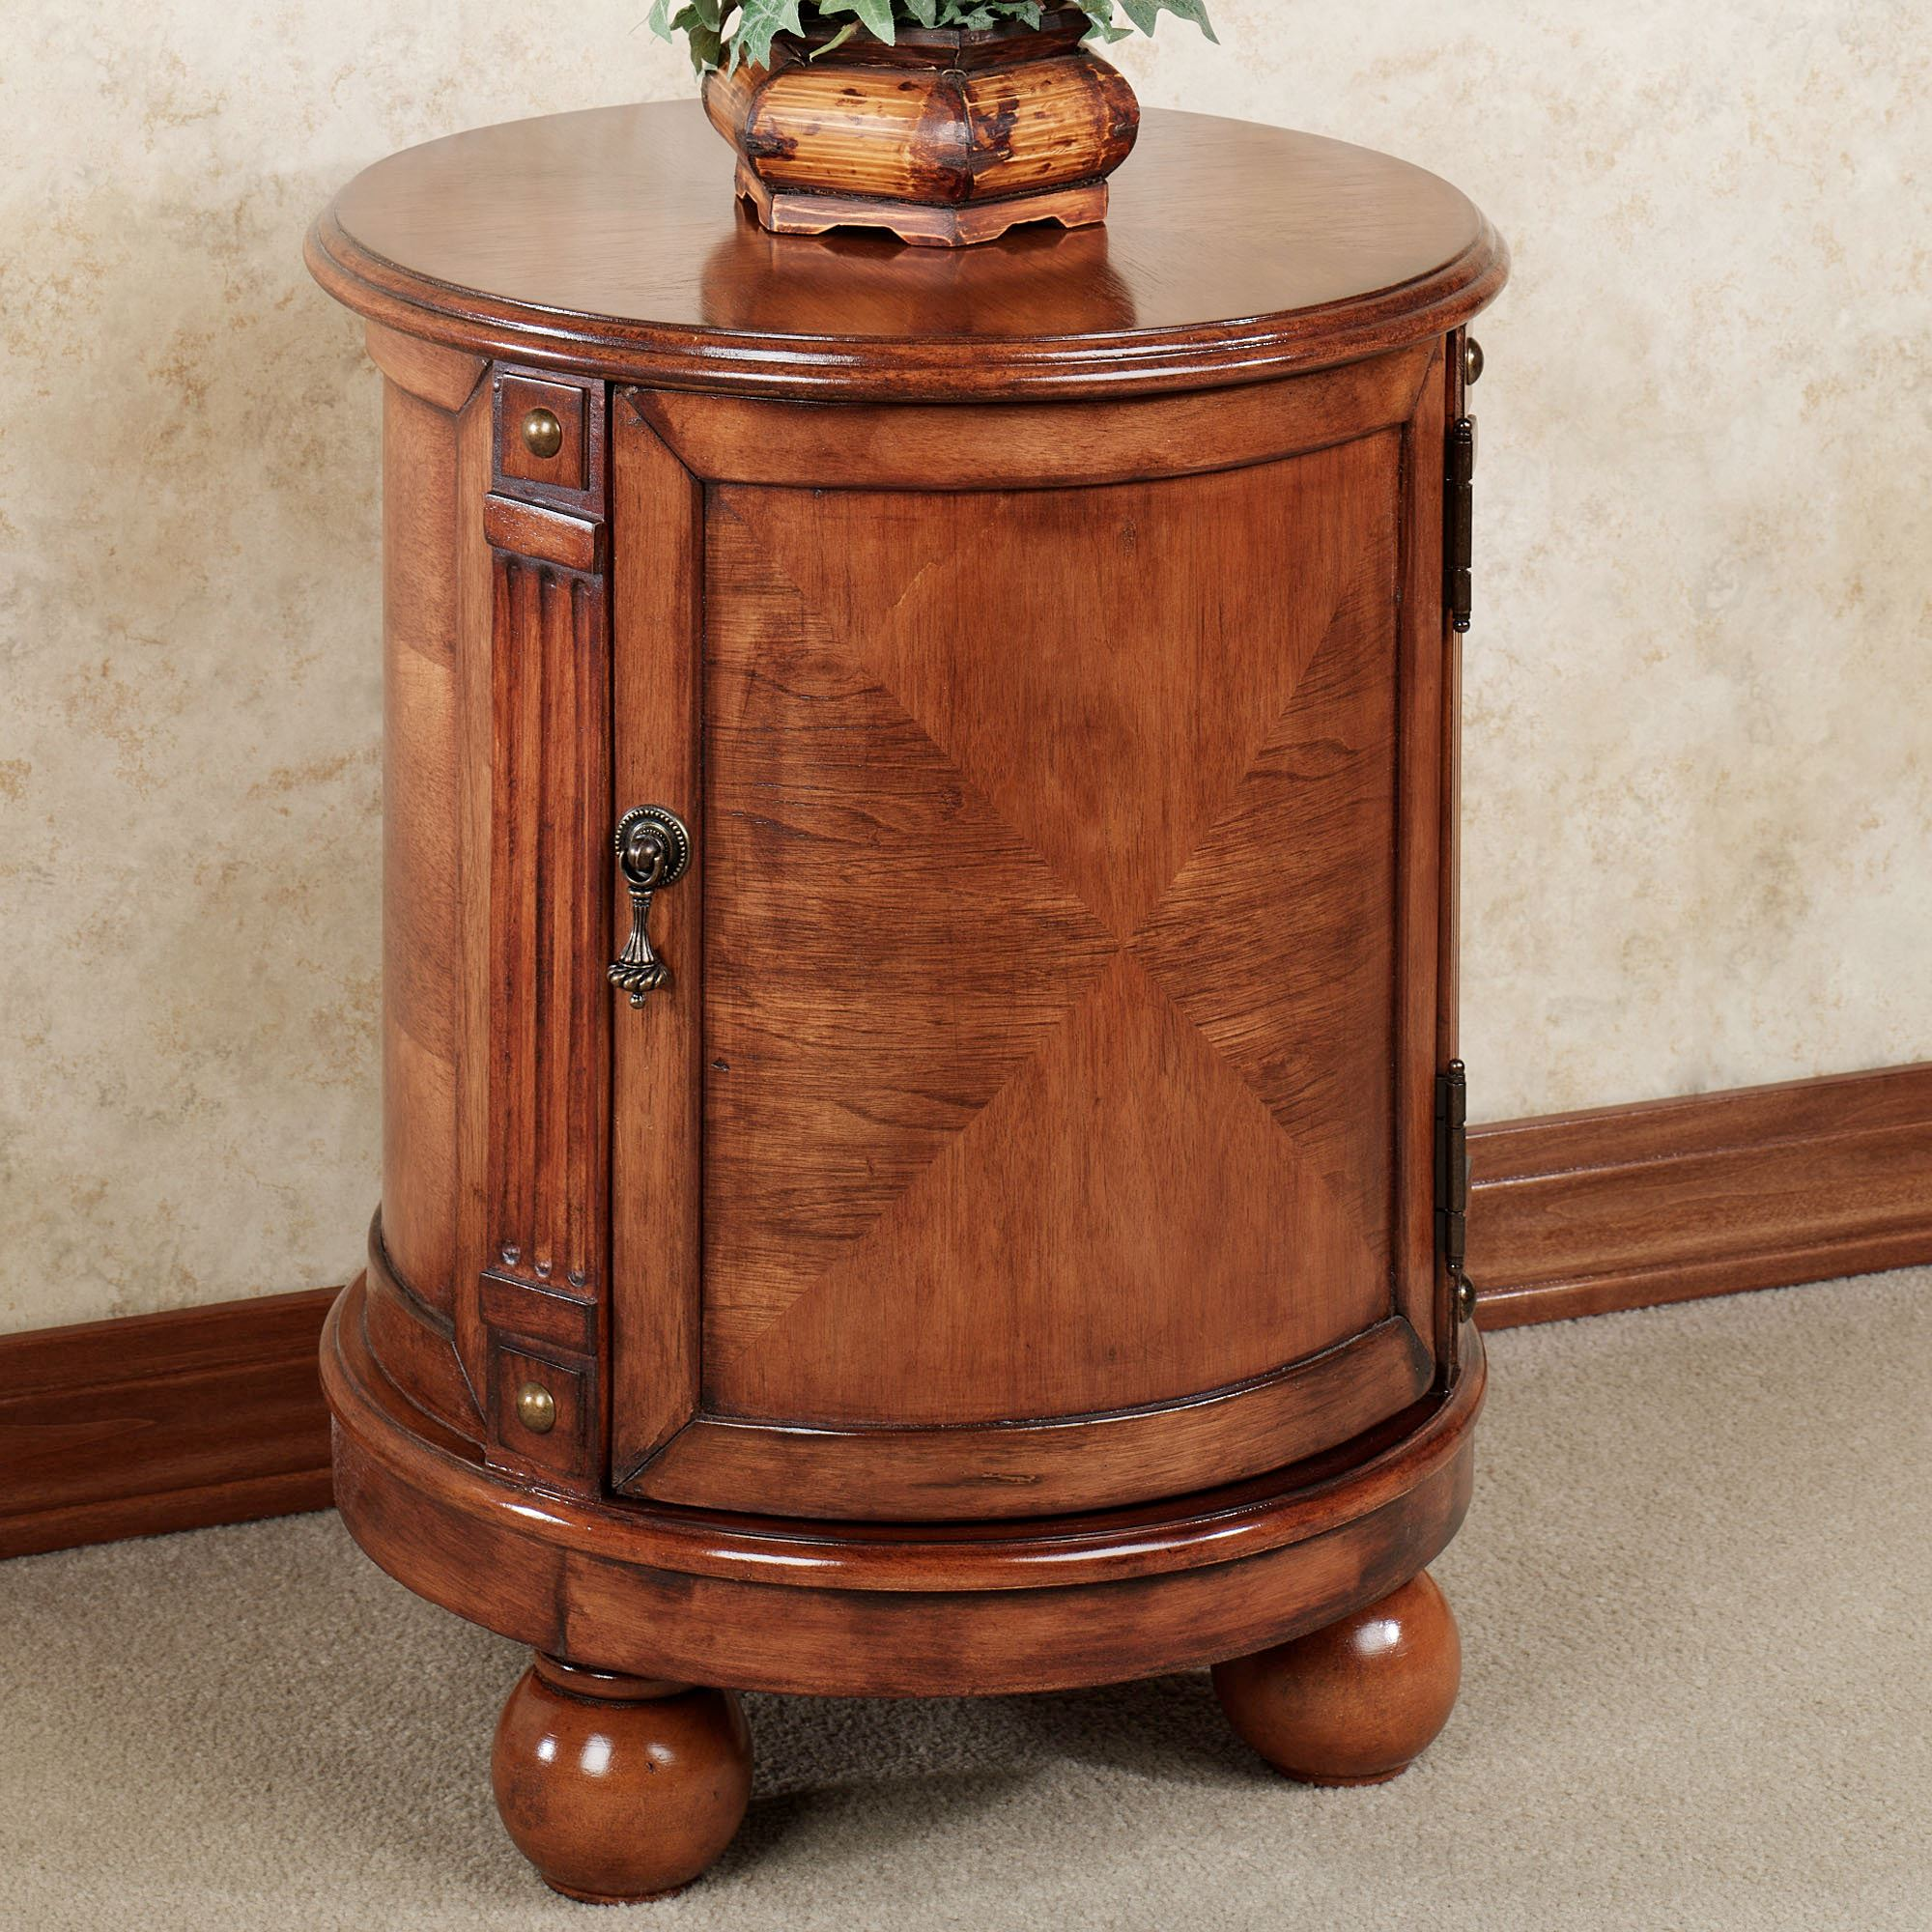 eldred round chairside accent storage chest end table with doors touch zoom extra large dog crate furniture above toilet shelf brushed silver coffee mirrored magnussen galloway